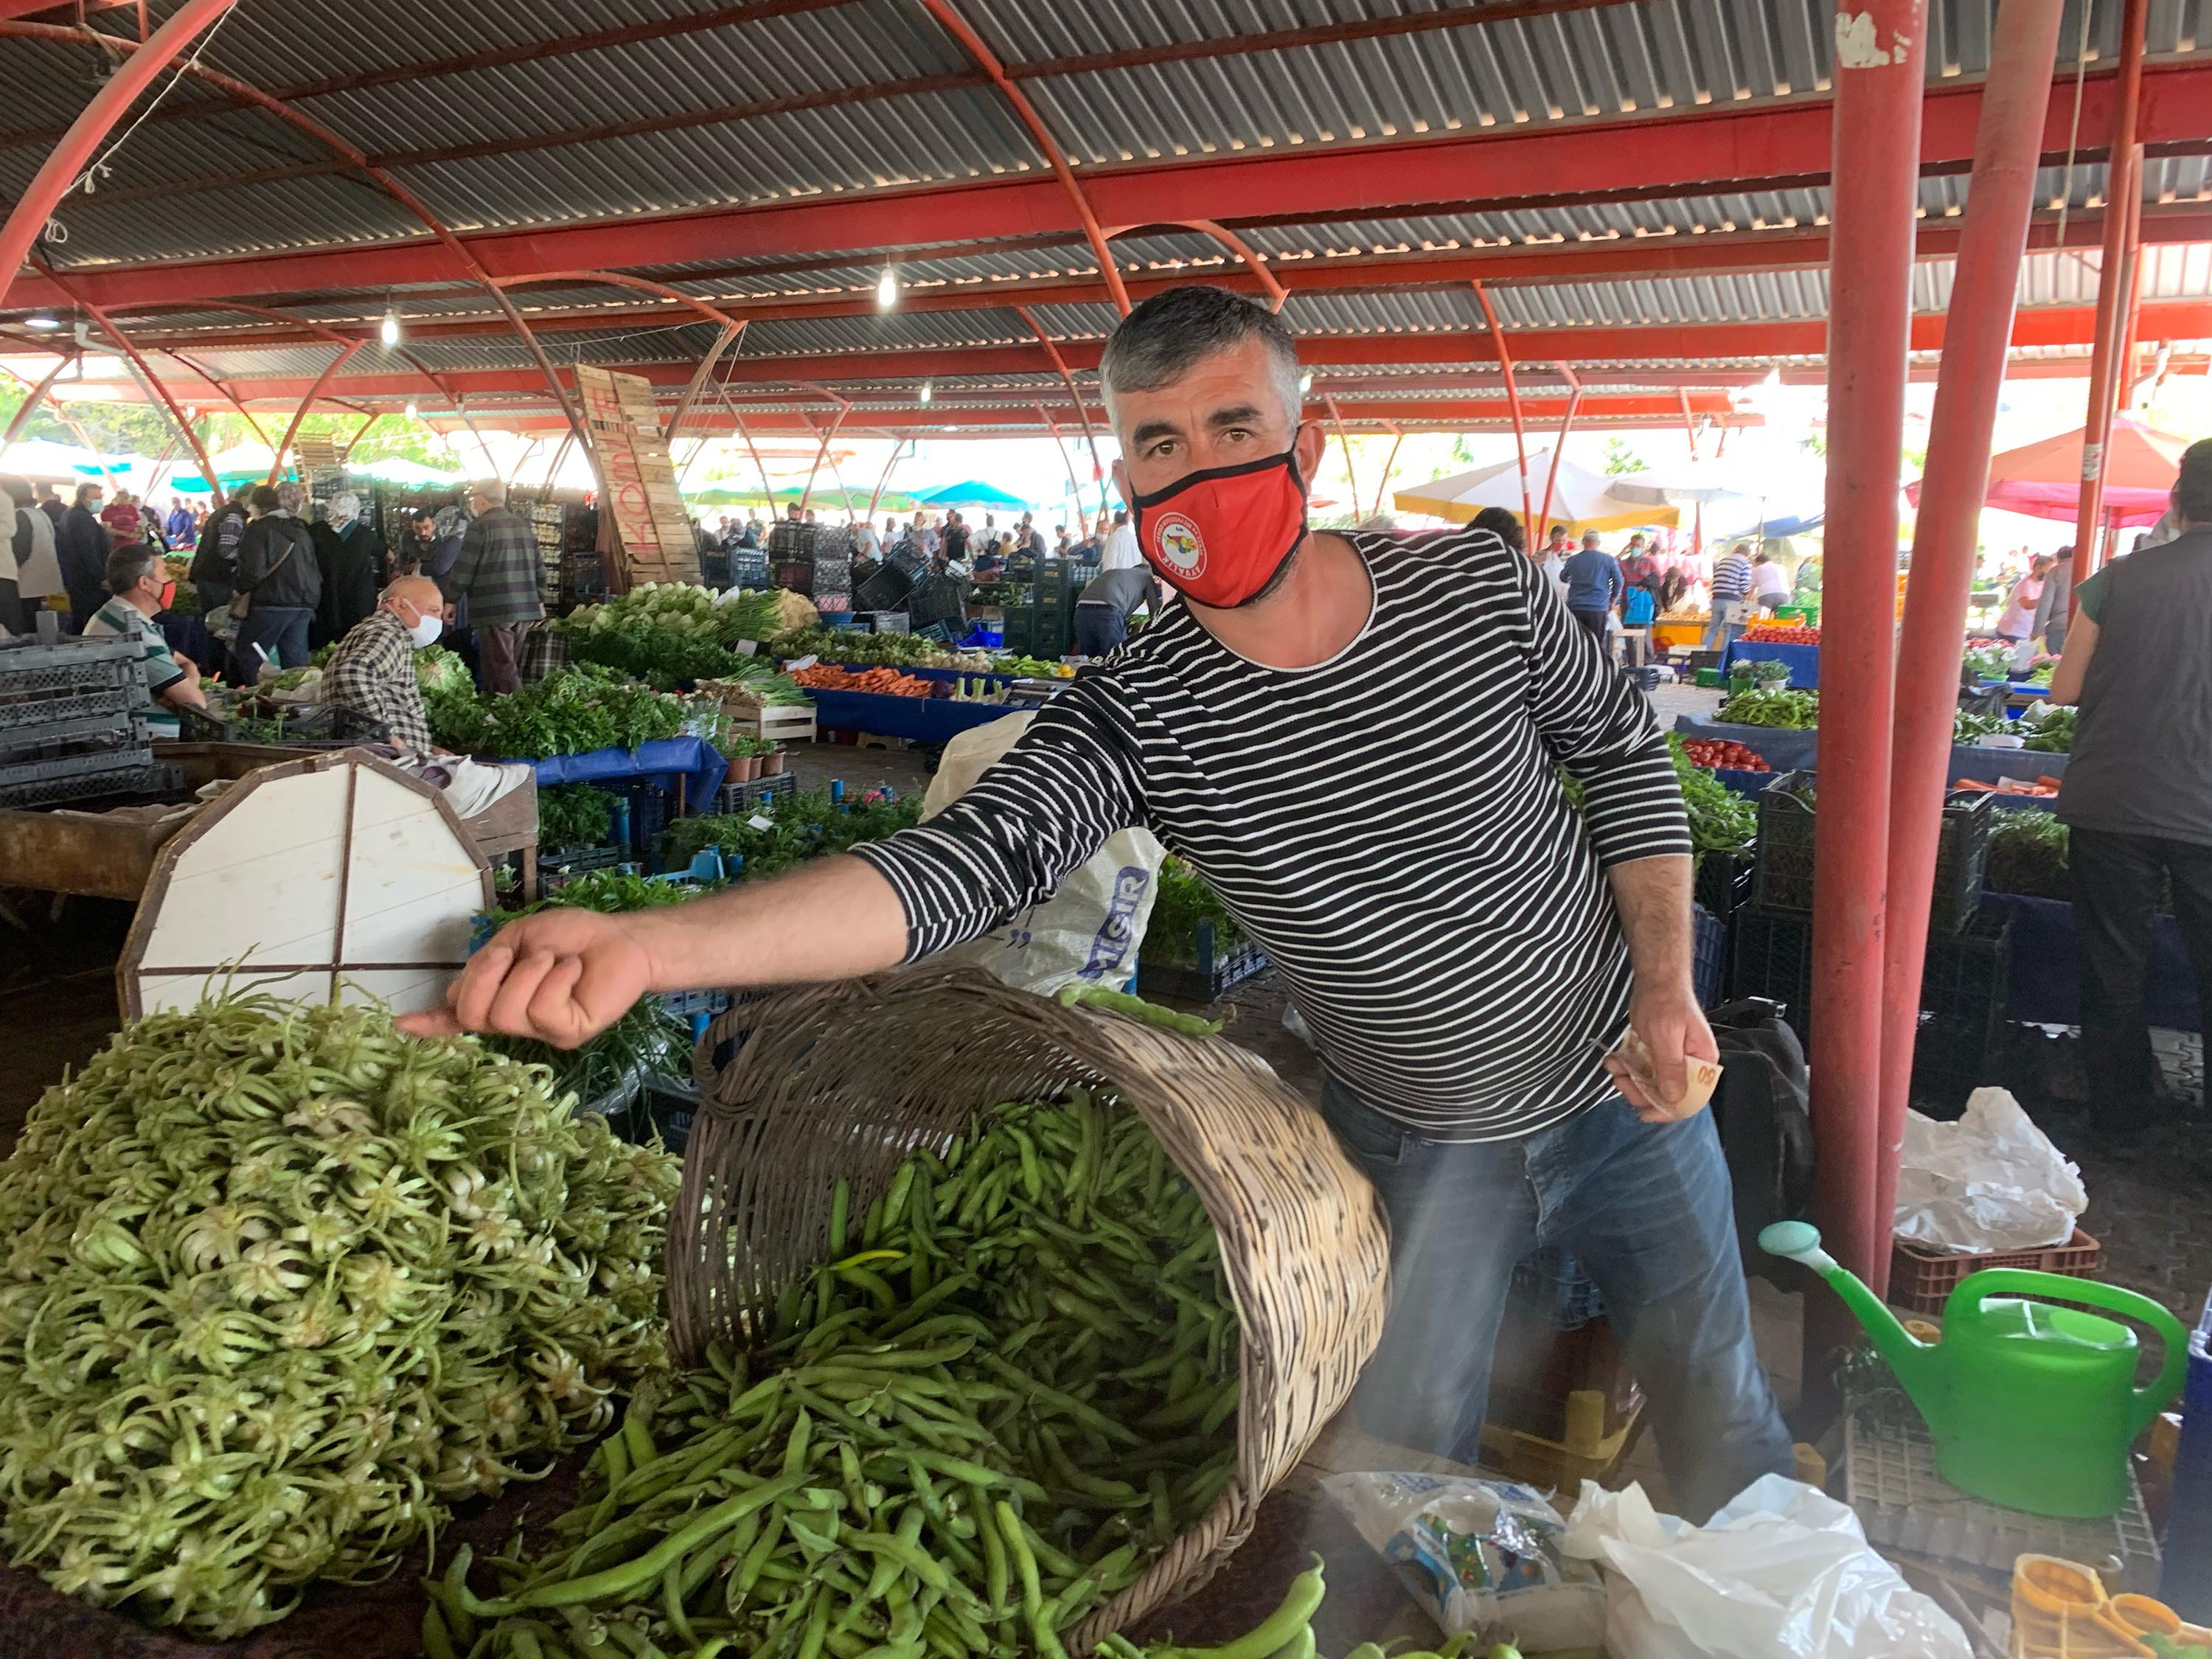 """Vegetable seller Hakan Keskin, 40, is pictured at the farmers market in Ayvalik, Turkey. """"This is our last chance before 3 hard weeks ahead. It's going to be difficult our vegetables are going to get old and we won't be making any money. It's going to be hard days ahead for us."""""""